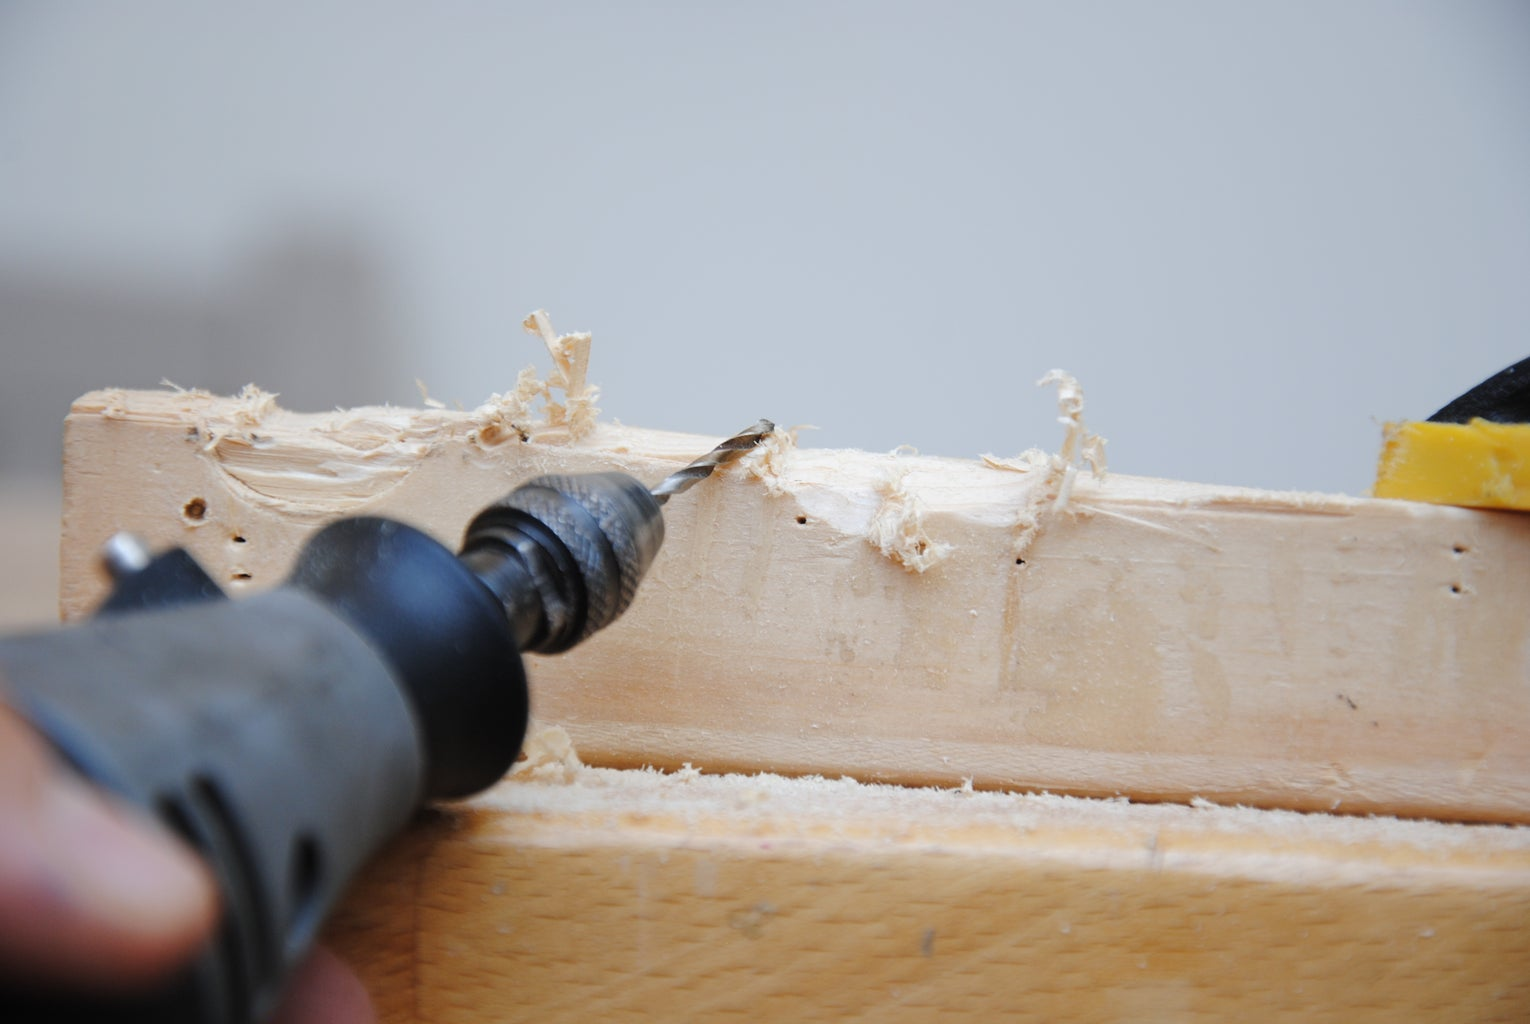 Carving Tools for a Dremel Rotary Tool!